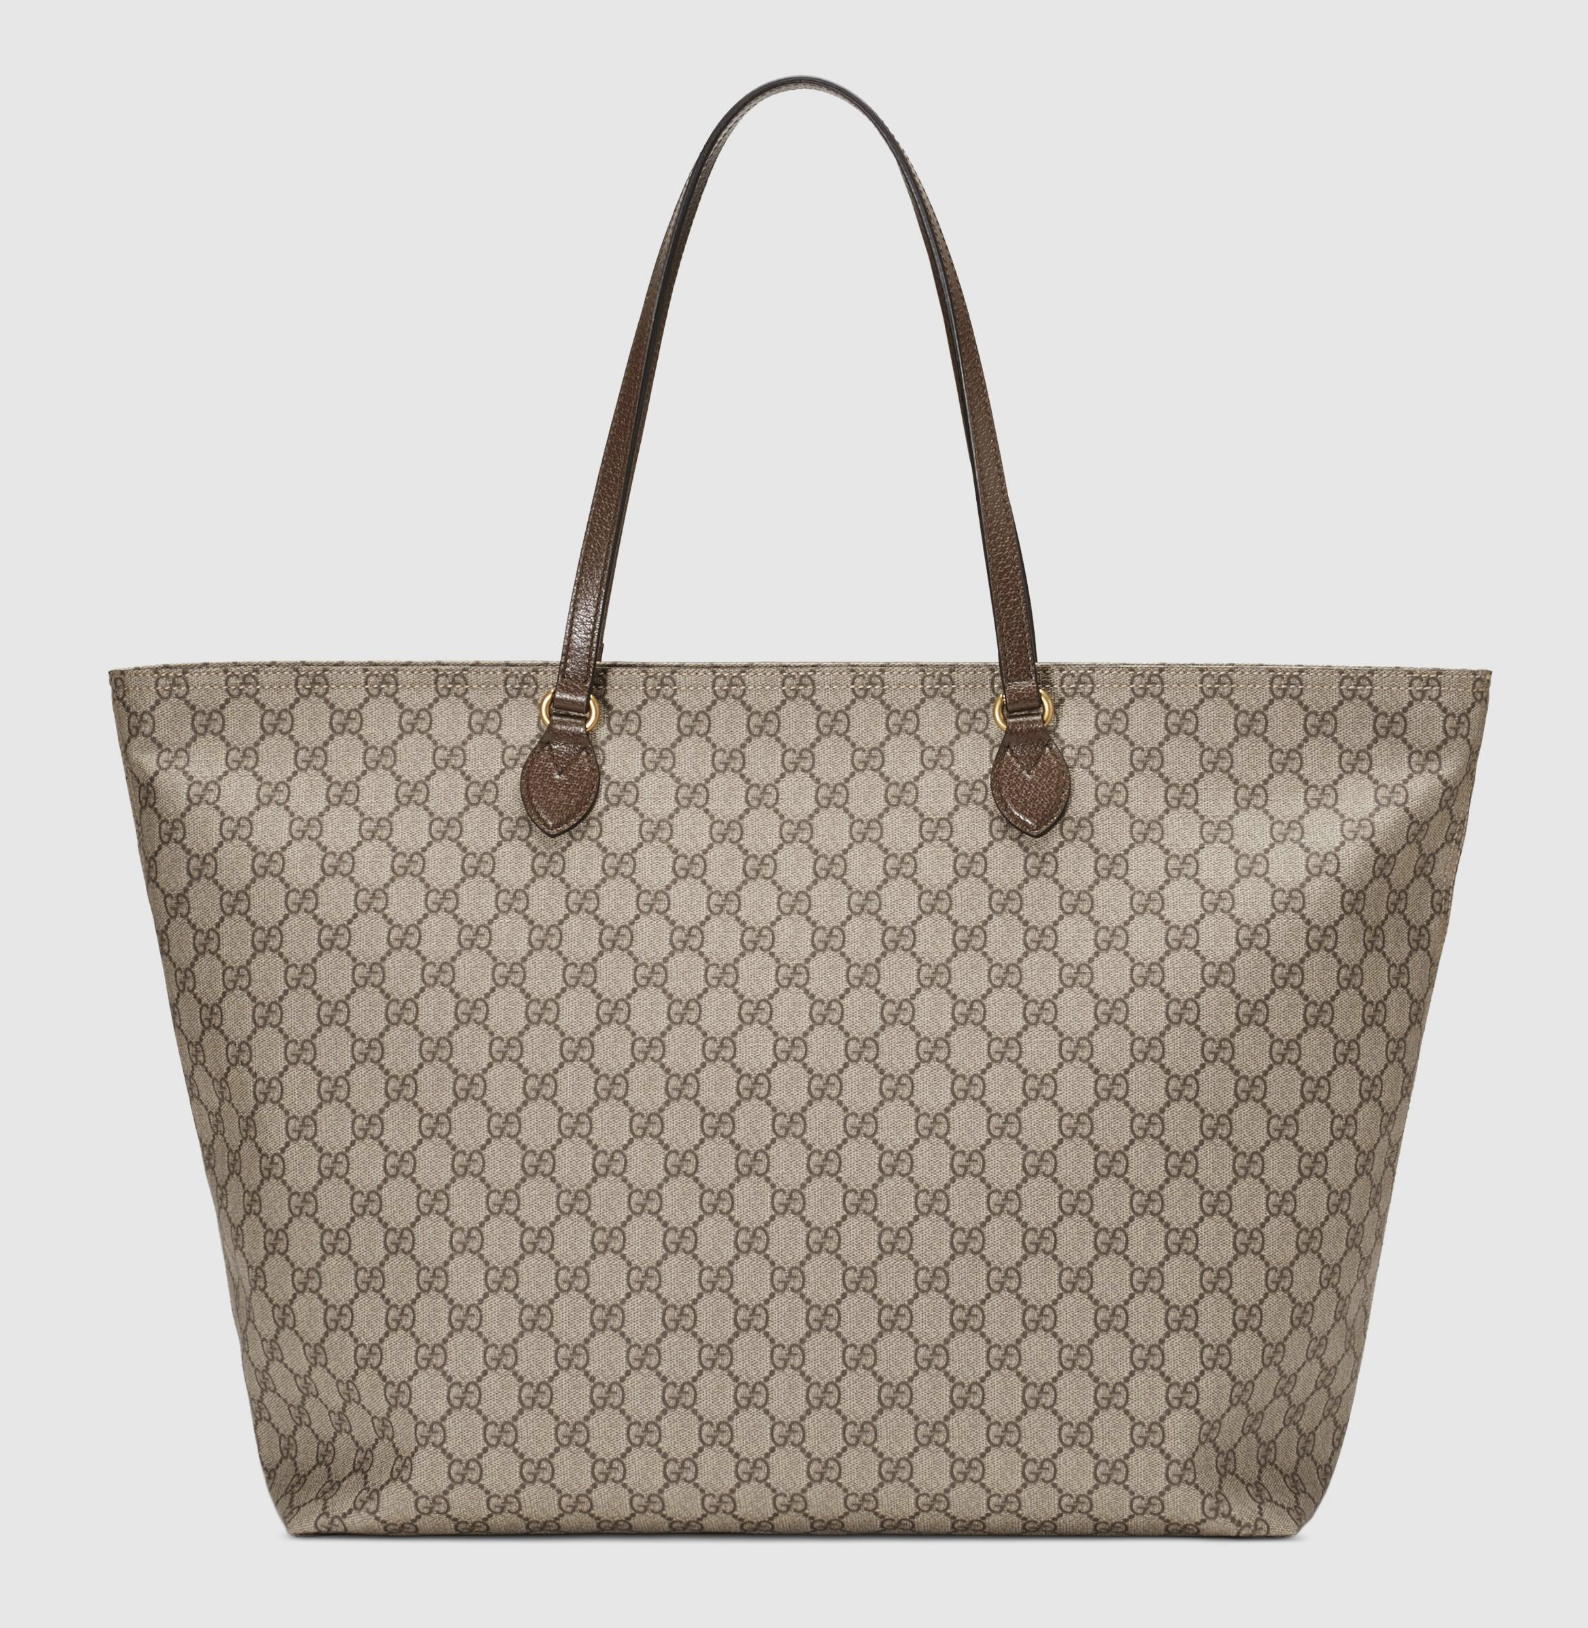 Ophidia GG Large Tote